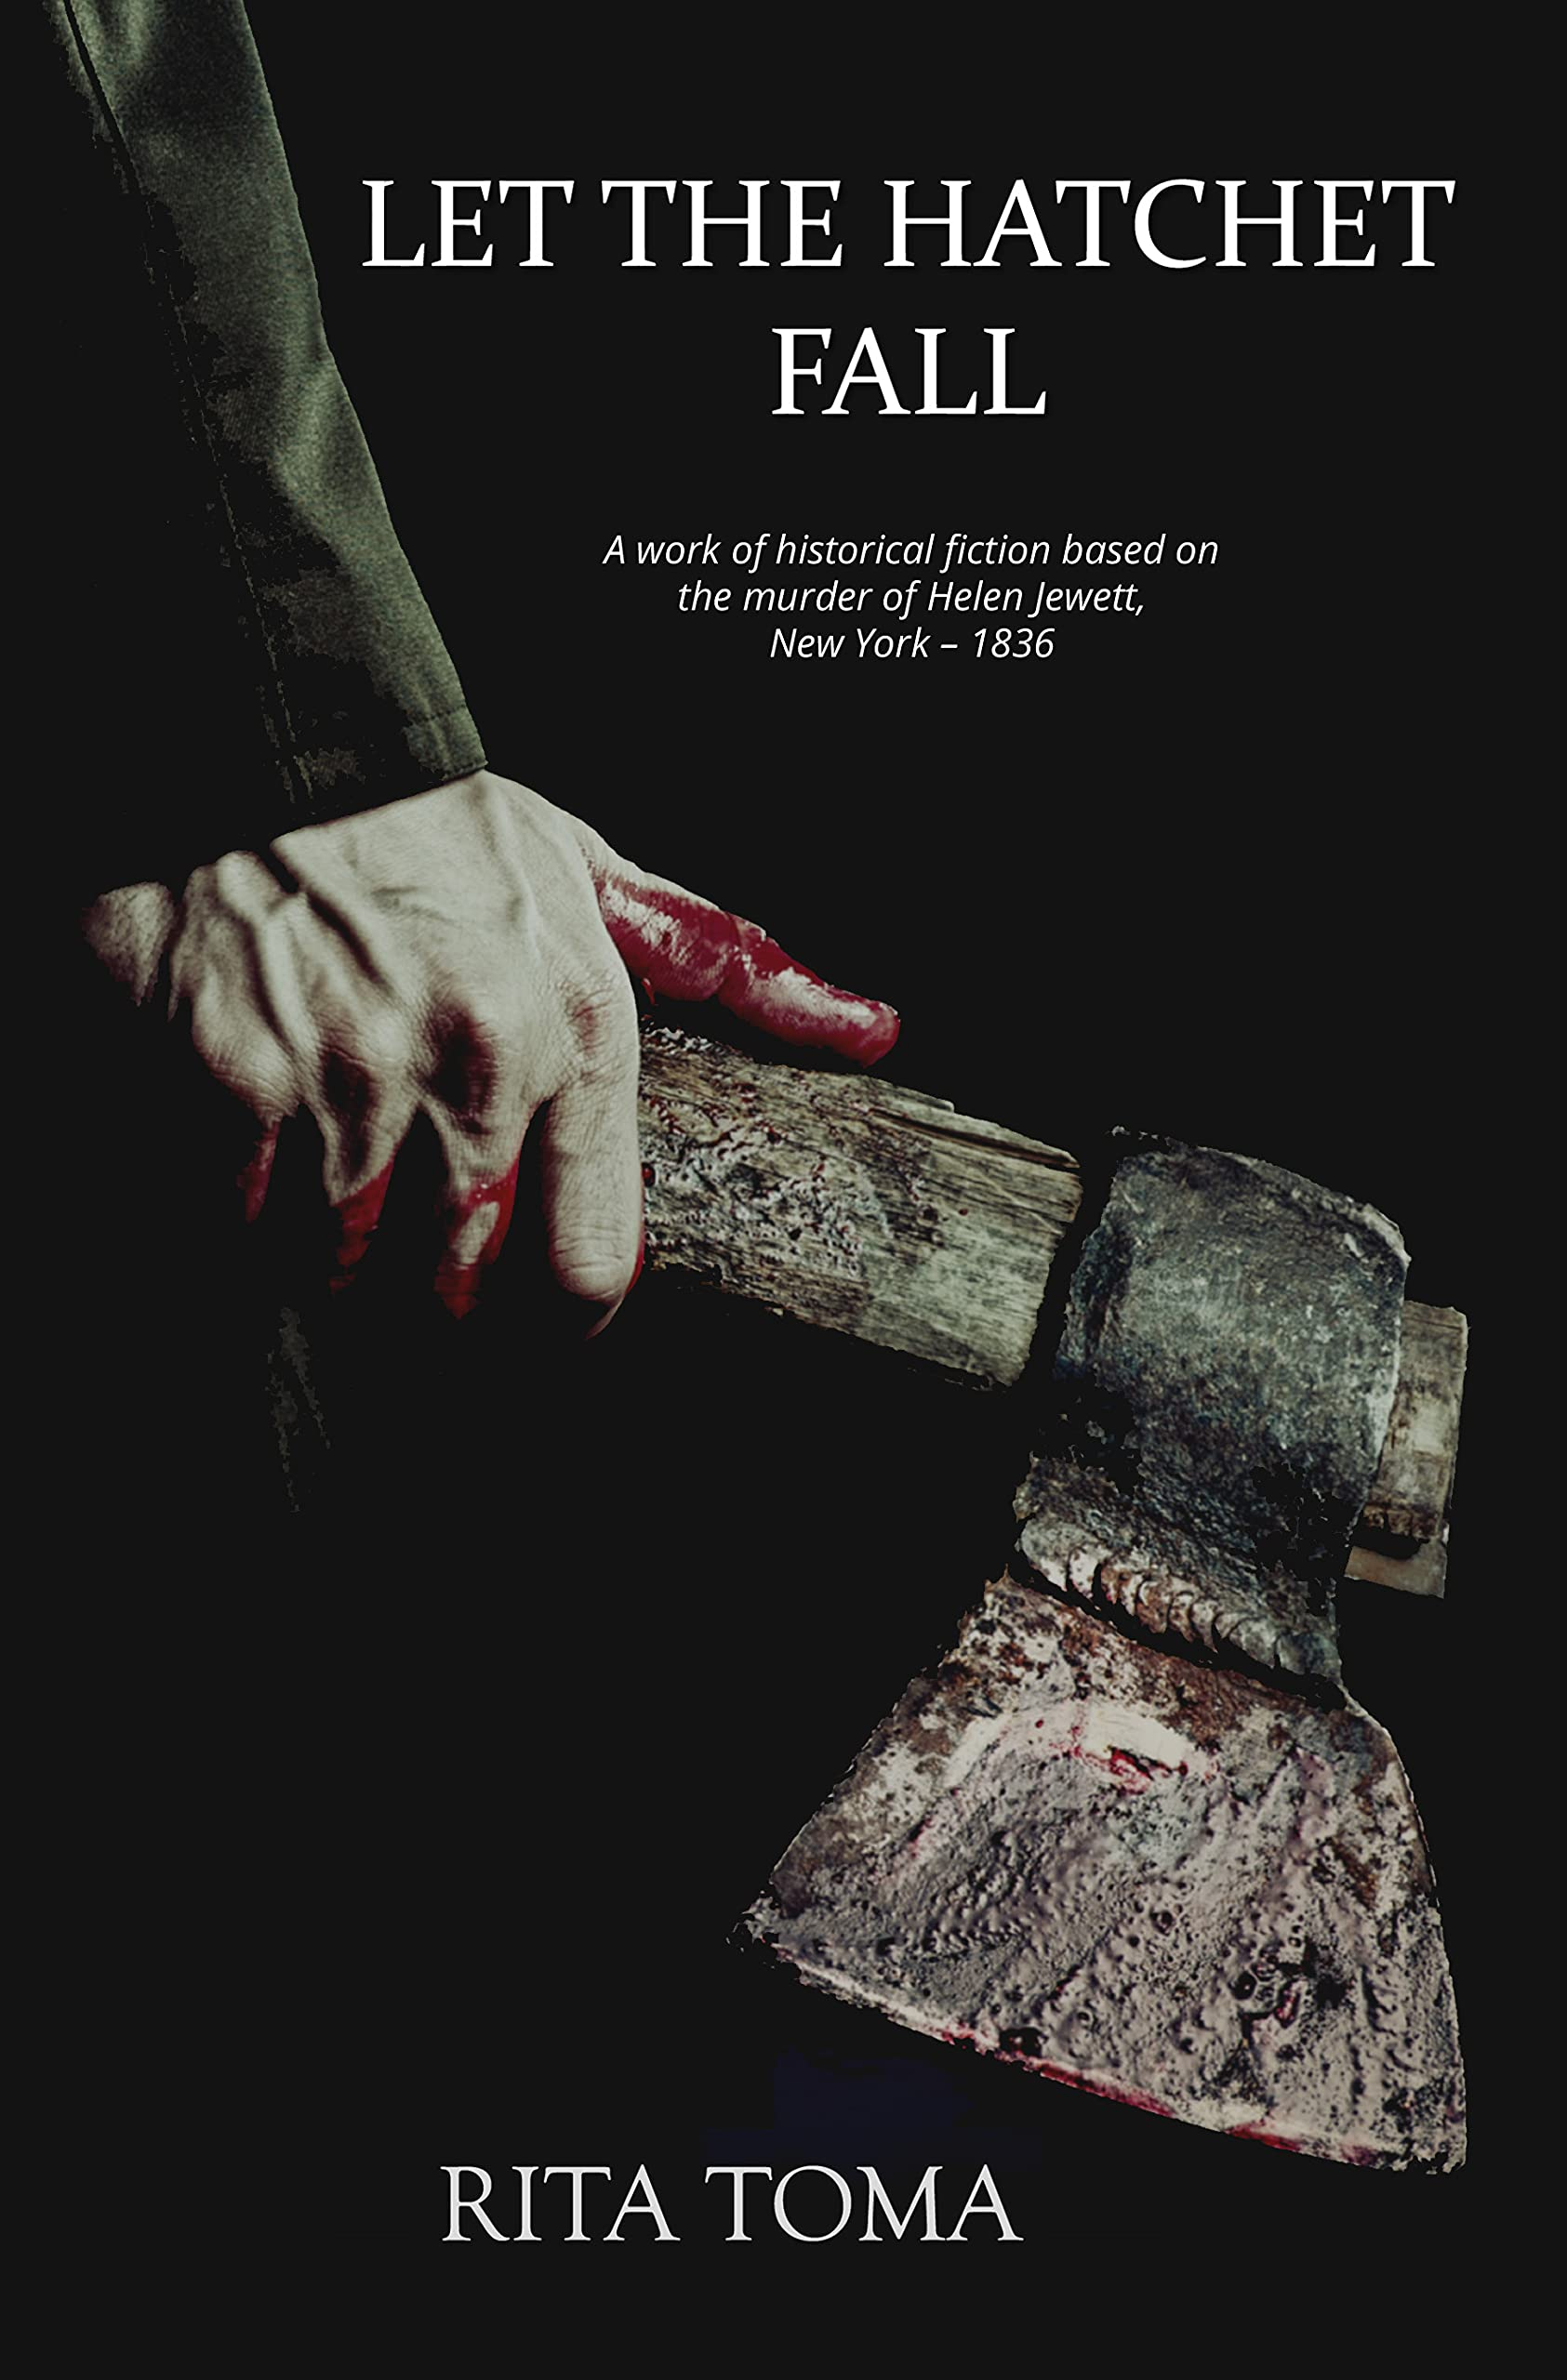 Let The Hatchet Fall: A work of historical fiction based on the murder of Helen Jewett, New York, 1836.